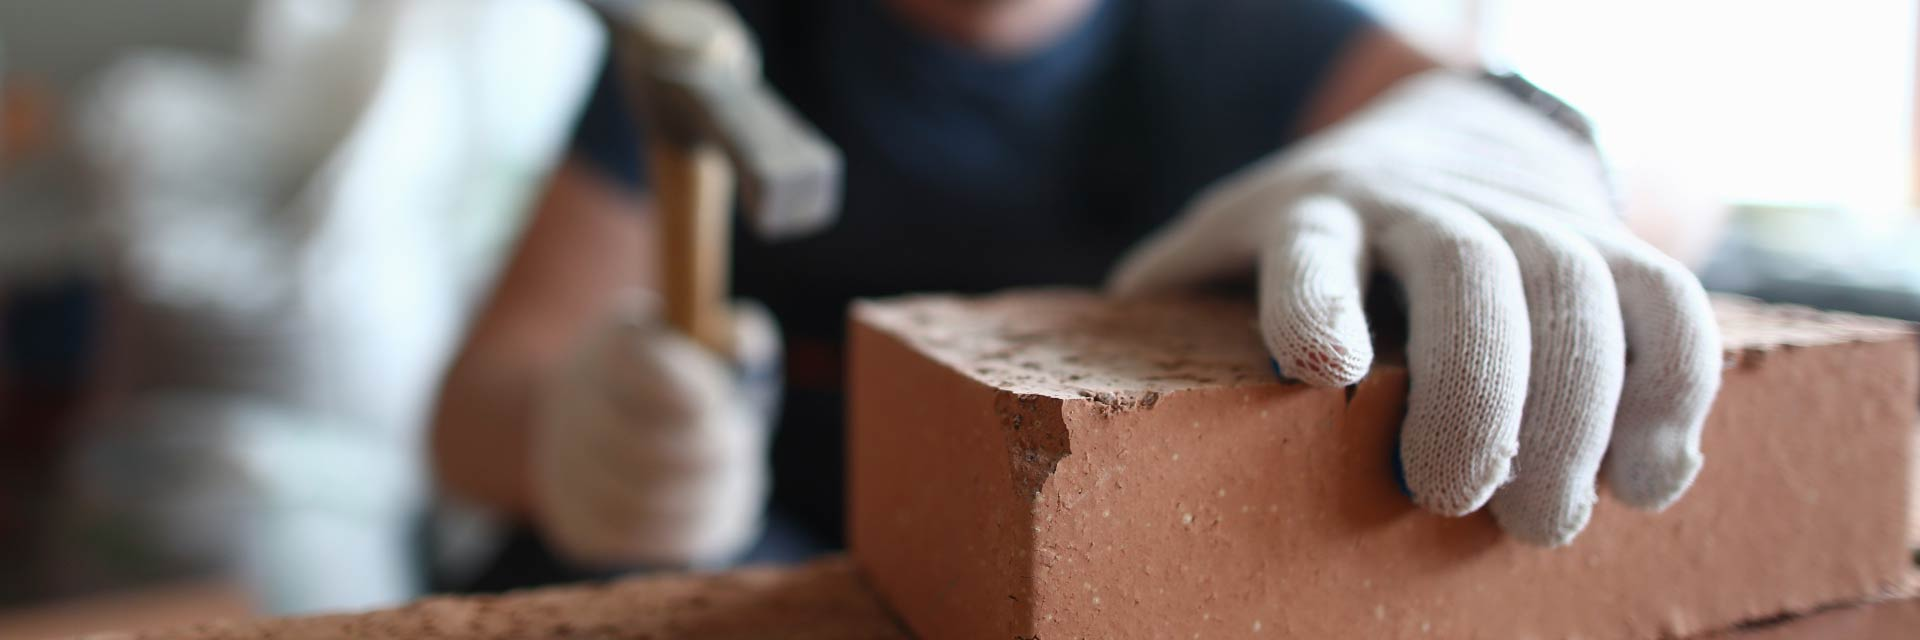 Mortar Repointing & Brick-Laying